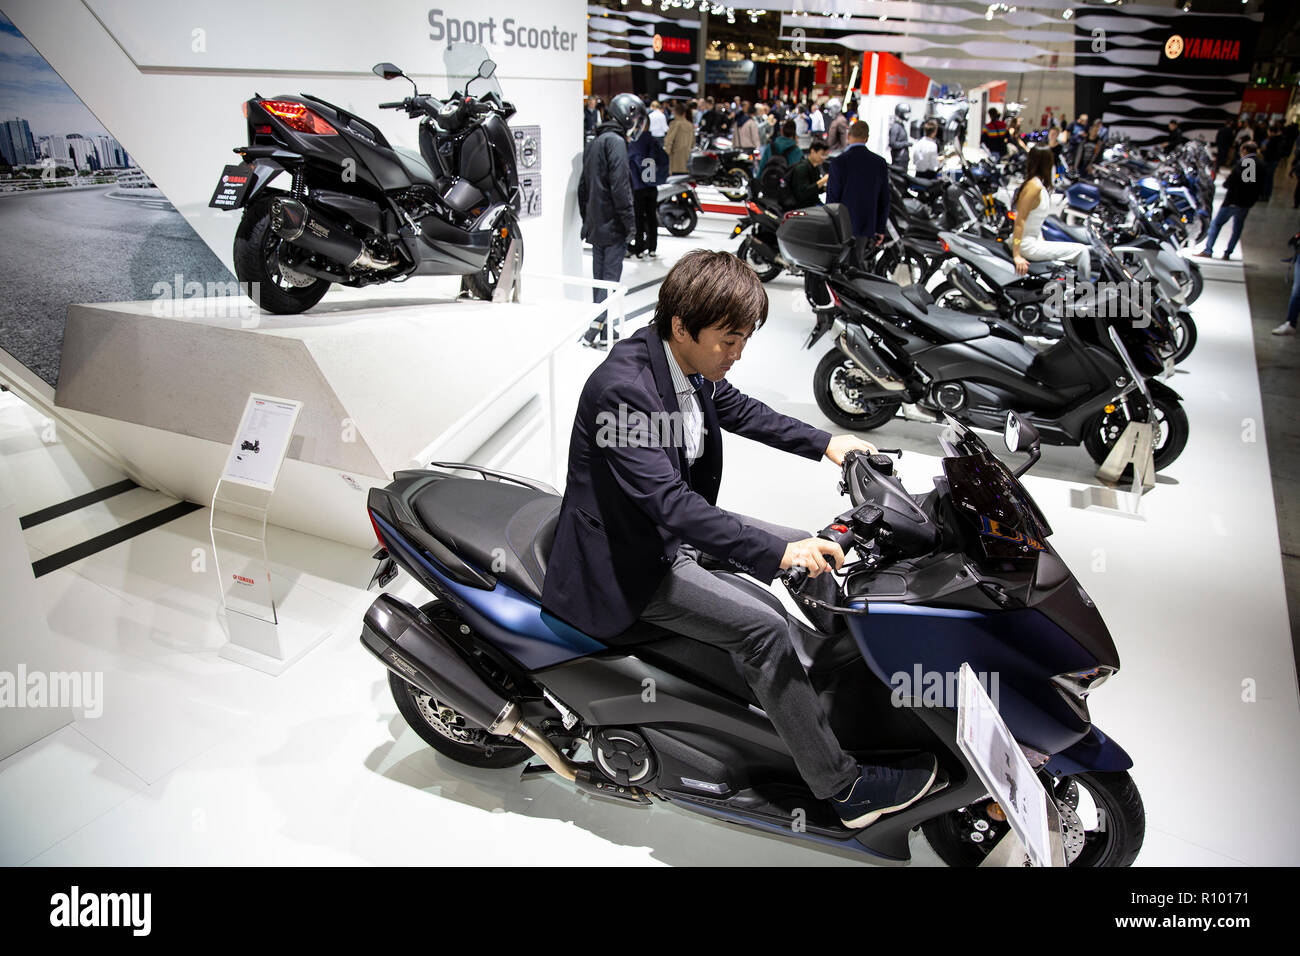 EICMA 2018 cycle and motorcycle expo at Milano Italy - Stock Image